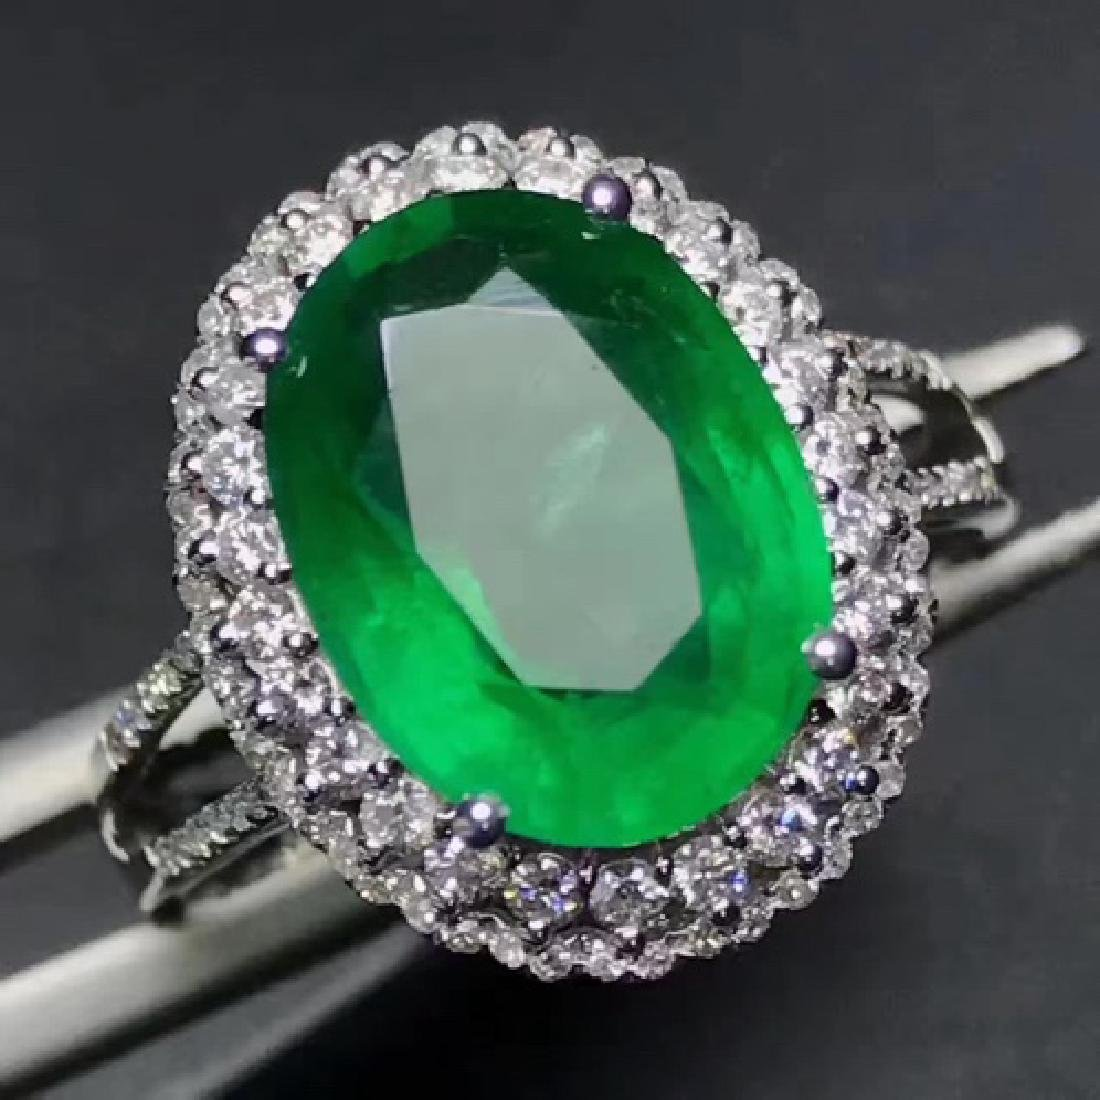 COLOMBIA EMERALD RING - 2